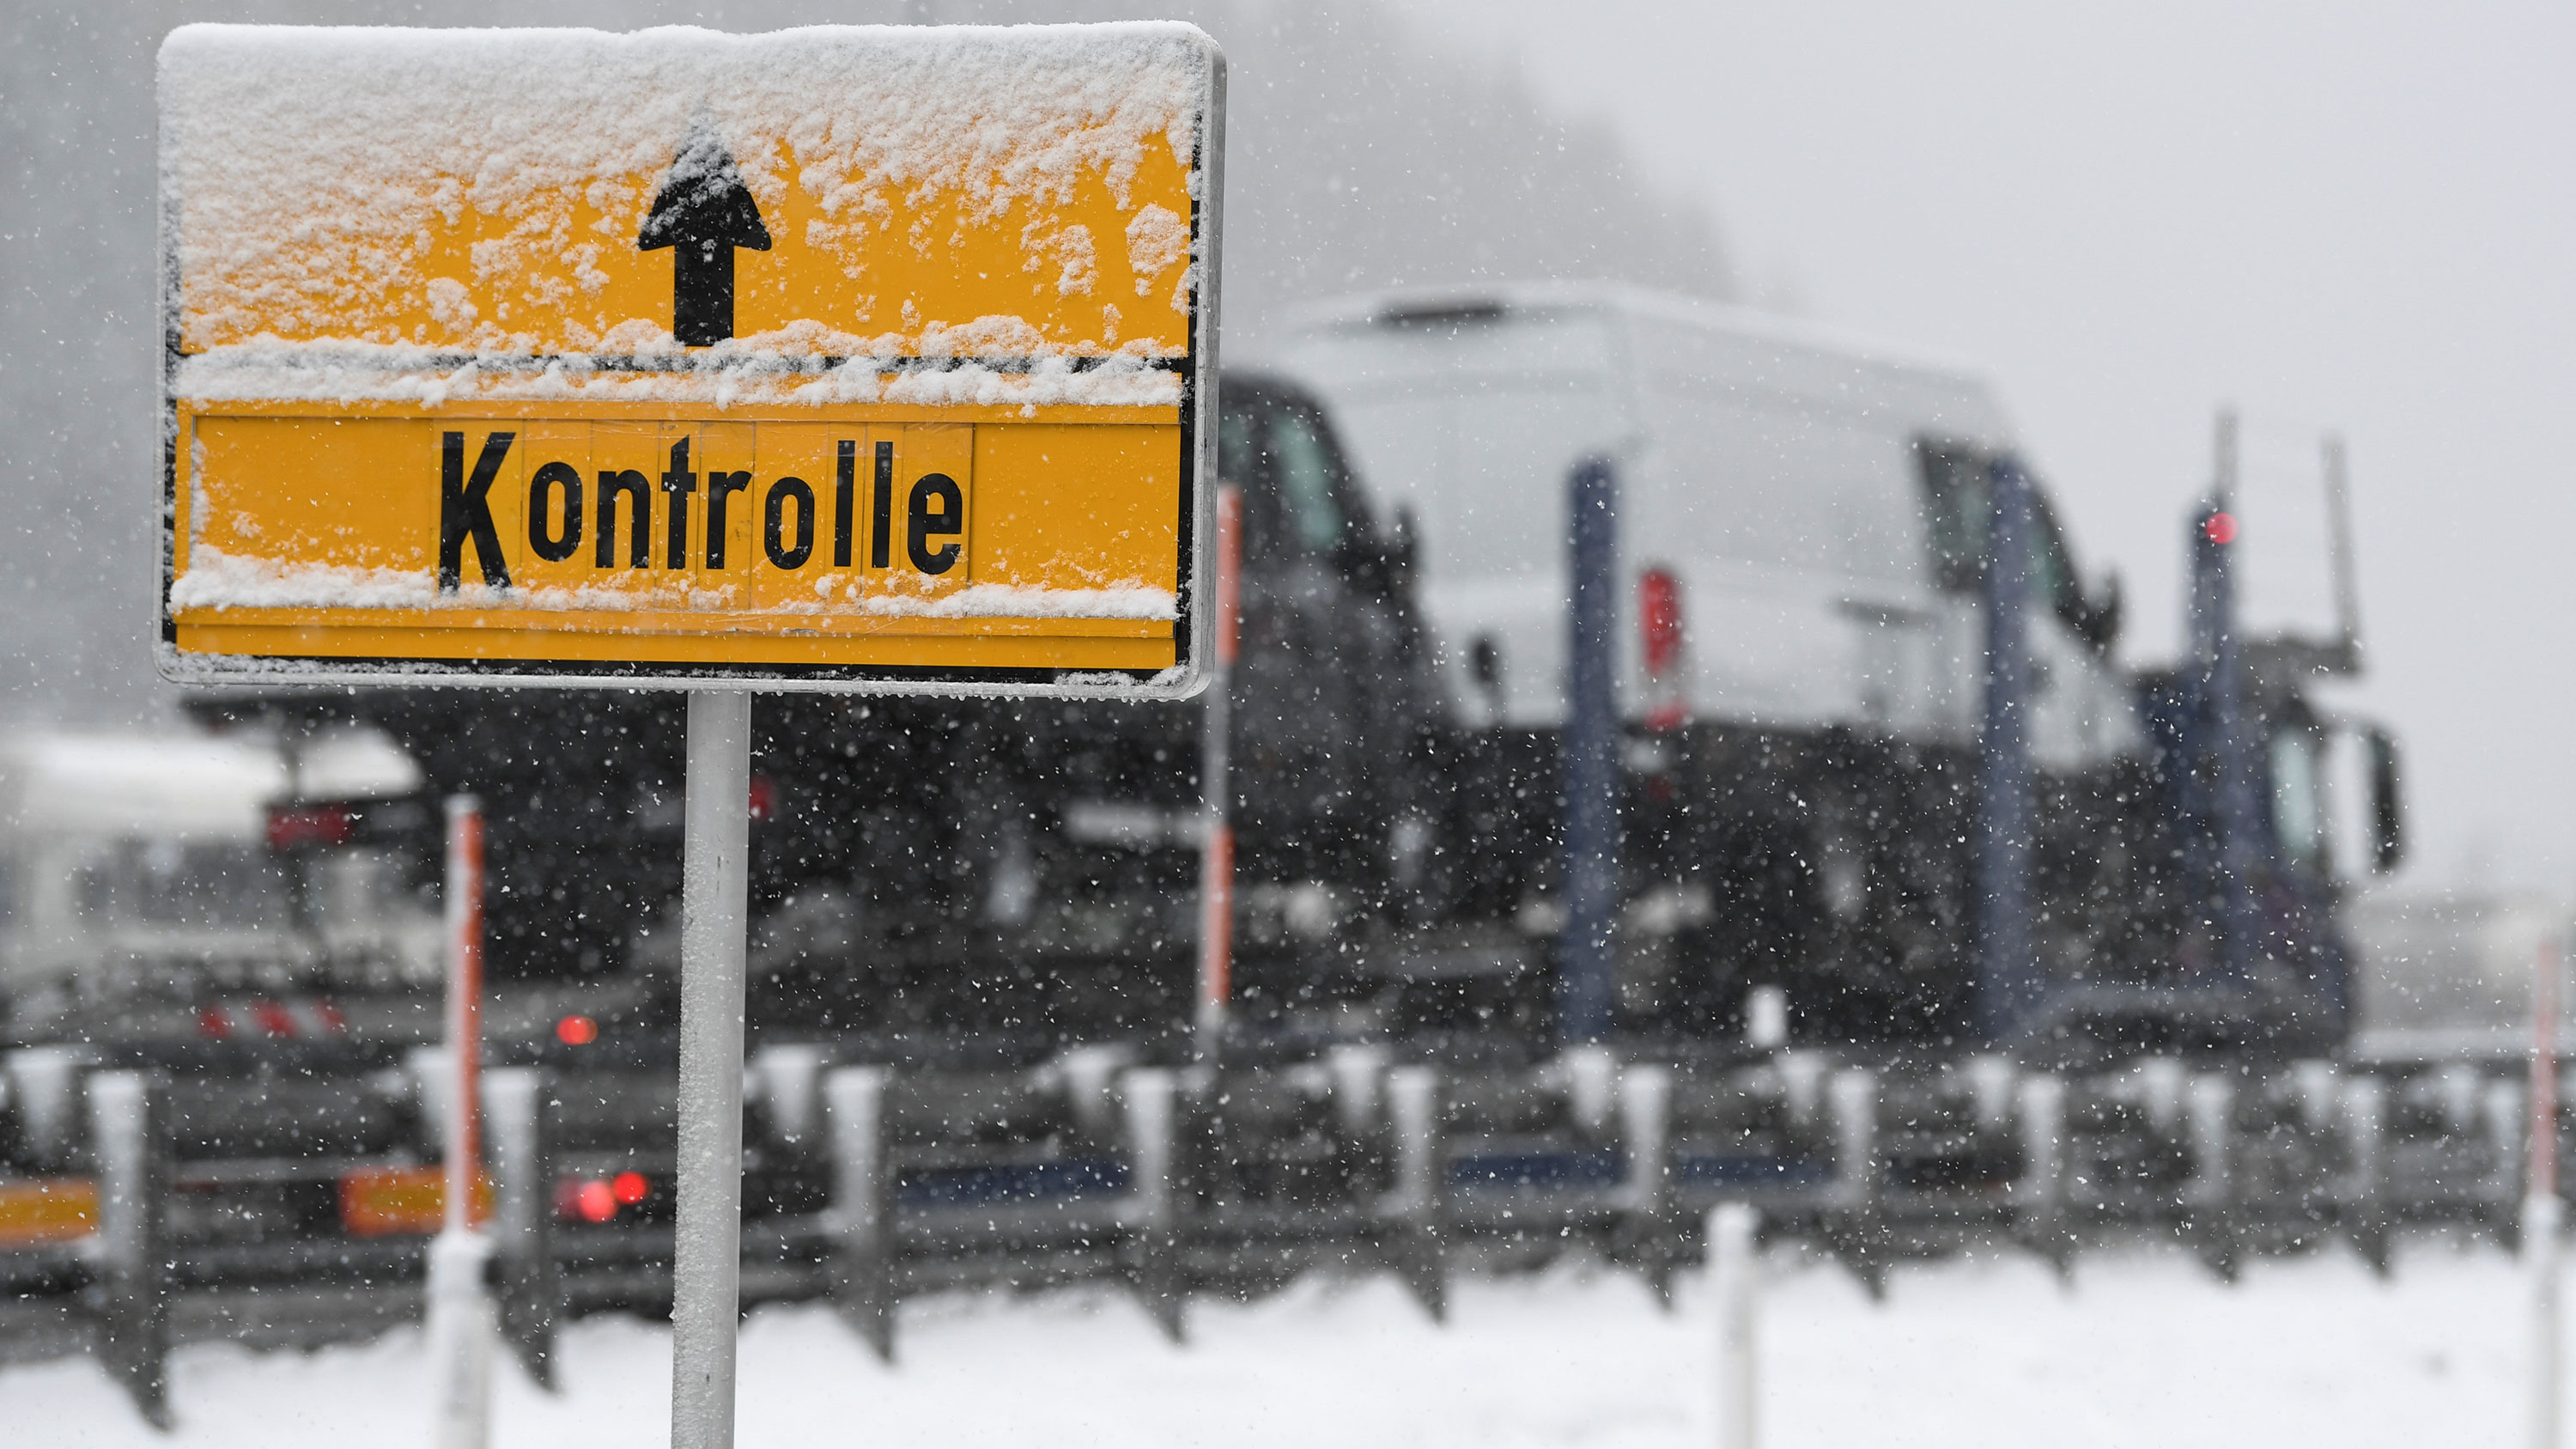 Picture shows a yellow sign and trucks waiting at the checkpoint. Snow is falling and partially obscures the sign.